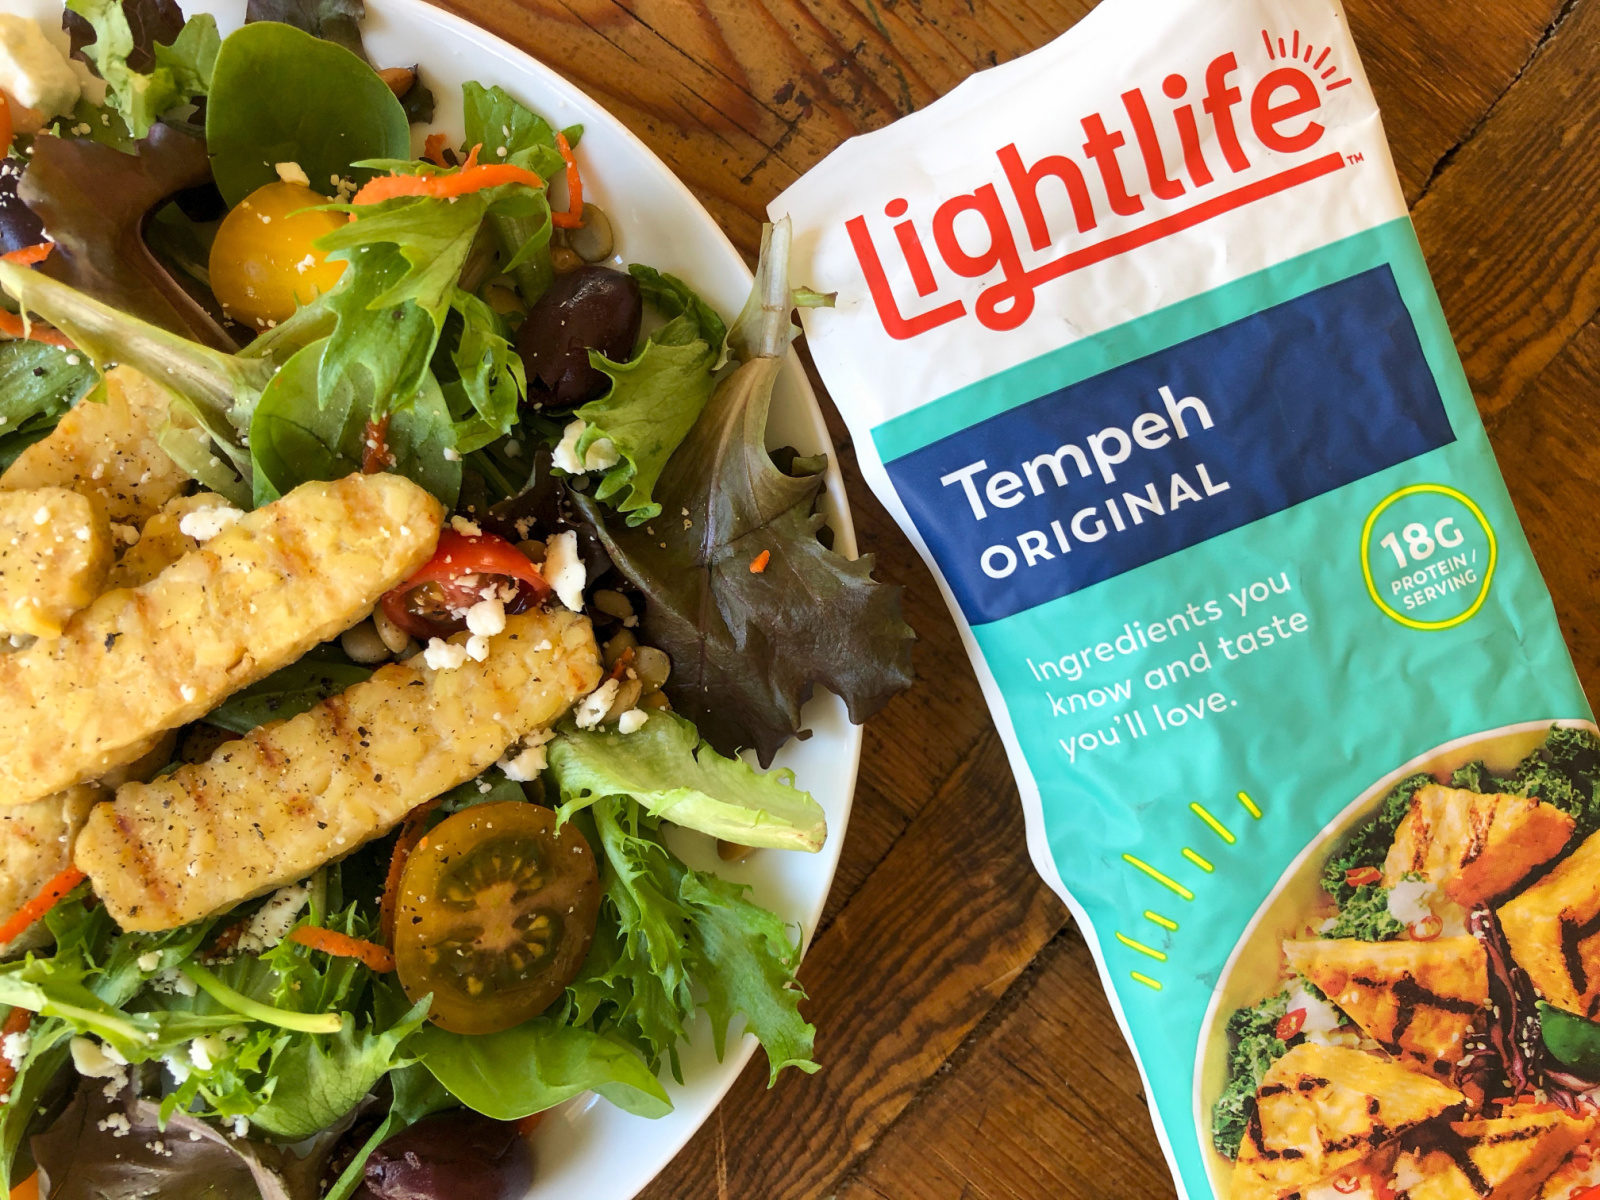 Lightlife Organic Soy Tempeh Just $1.99 At Publix (Half Price!) on I Heart Publix 1